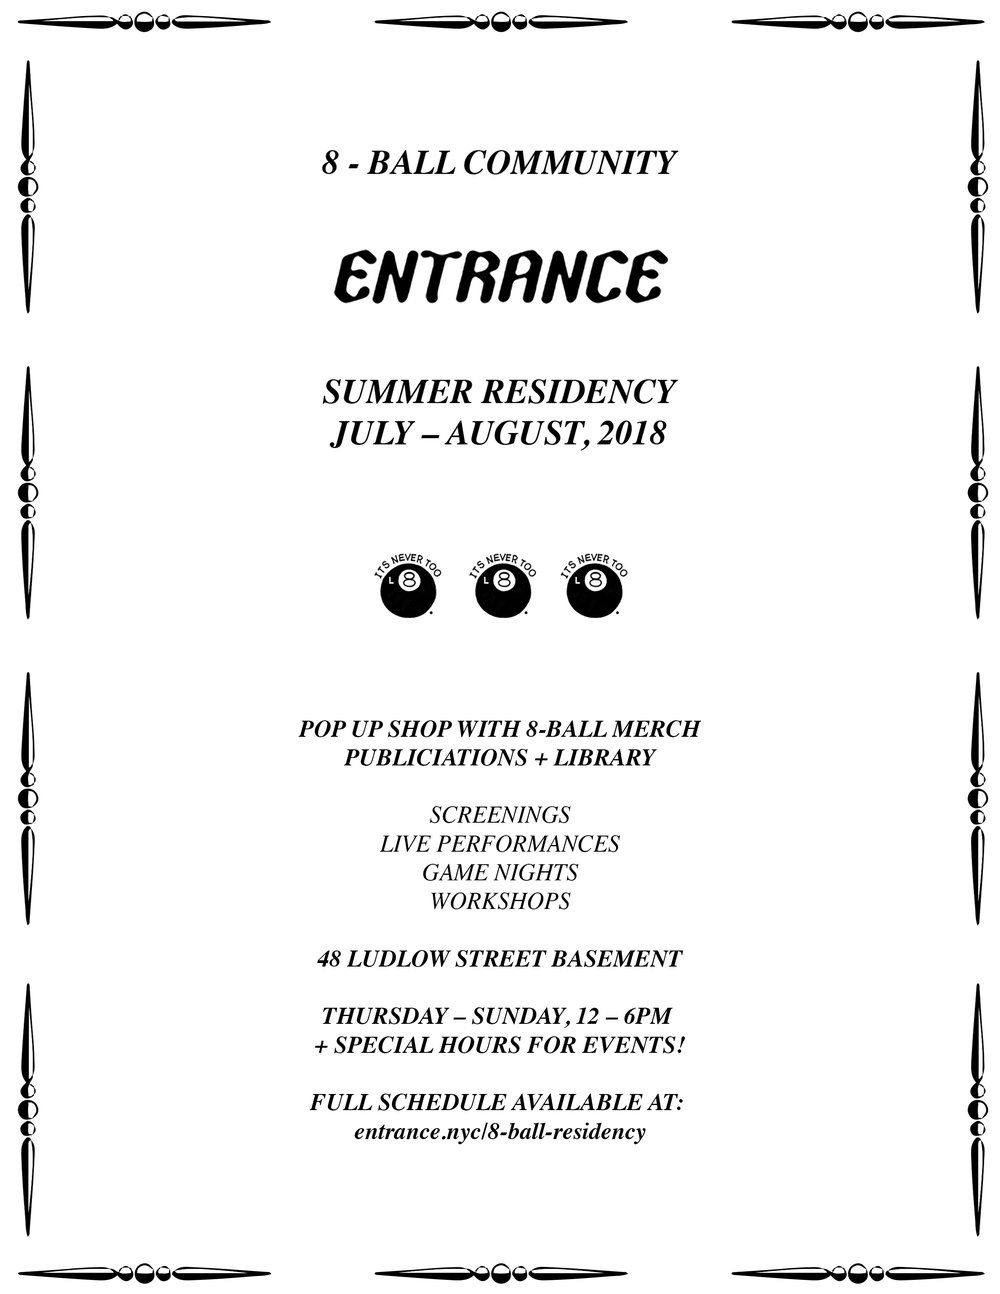 8-Ball Community Residency - July – August, 2018Add to: Google Calendar iCal